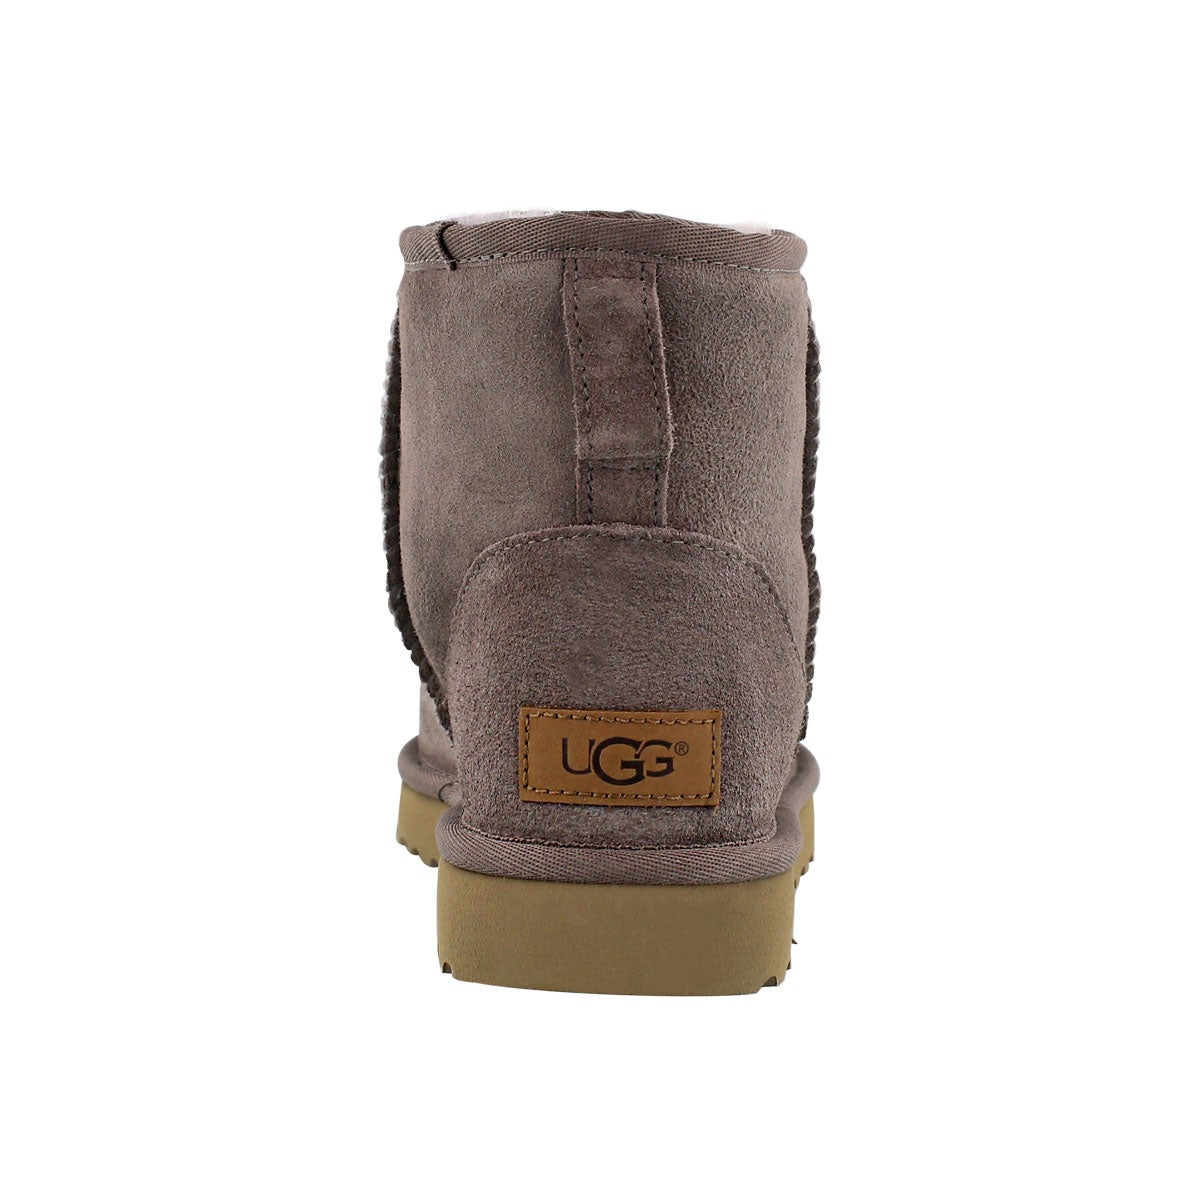 ugg boots sale damen 39 division of global affairs. Black Bedroom Furniture Sets. Home Design Ideas